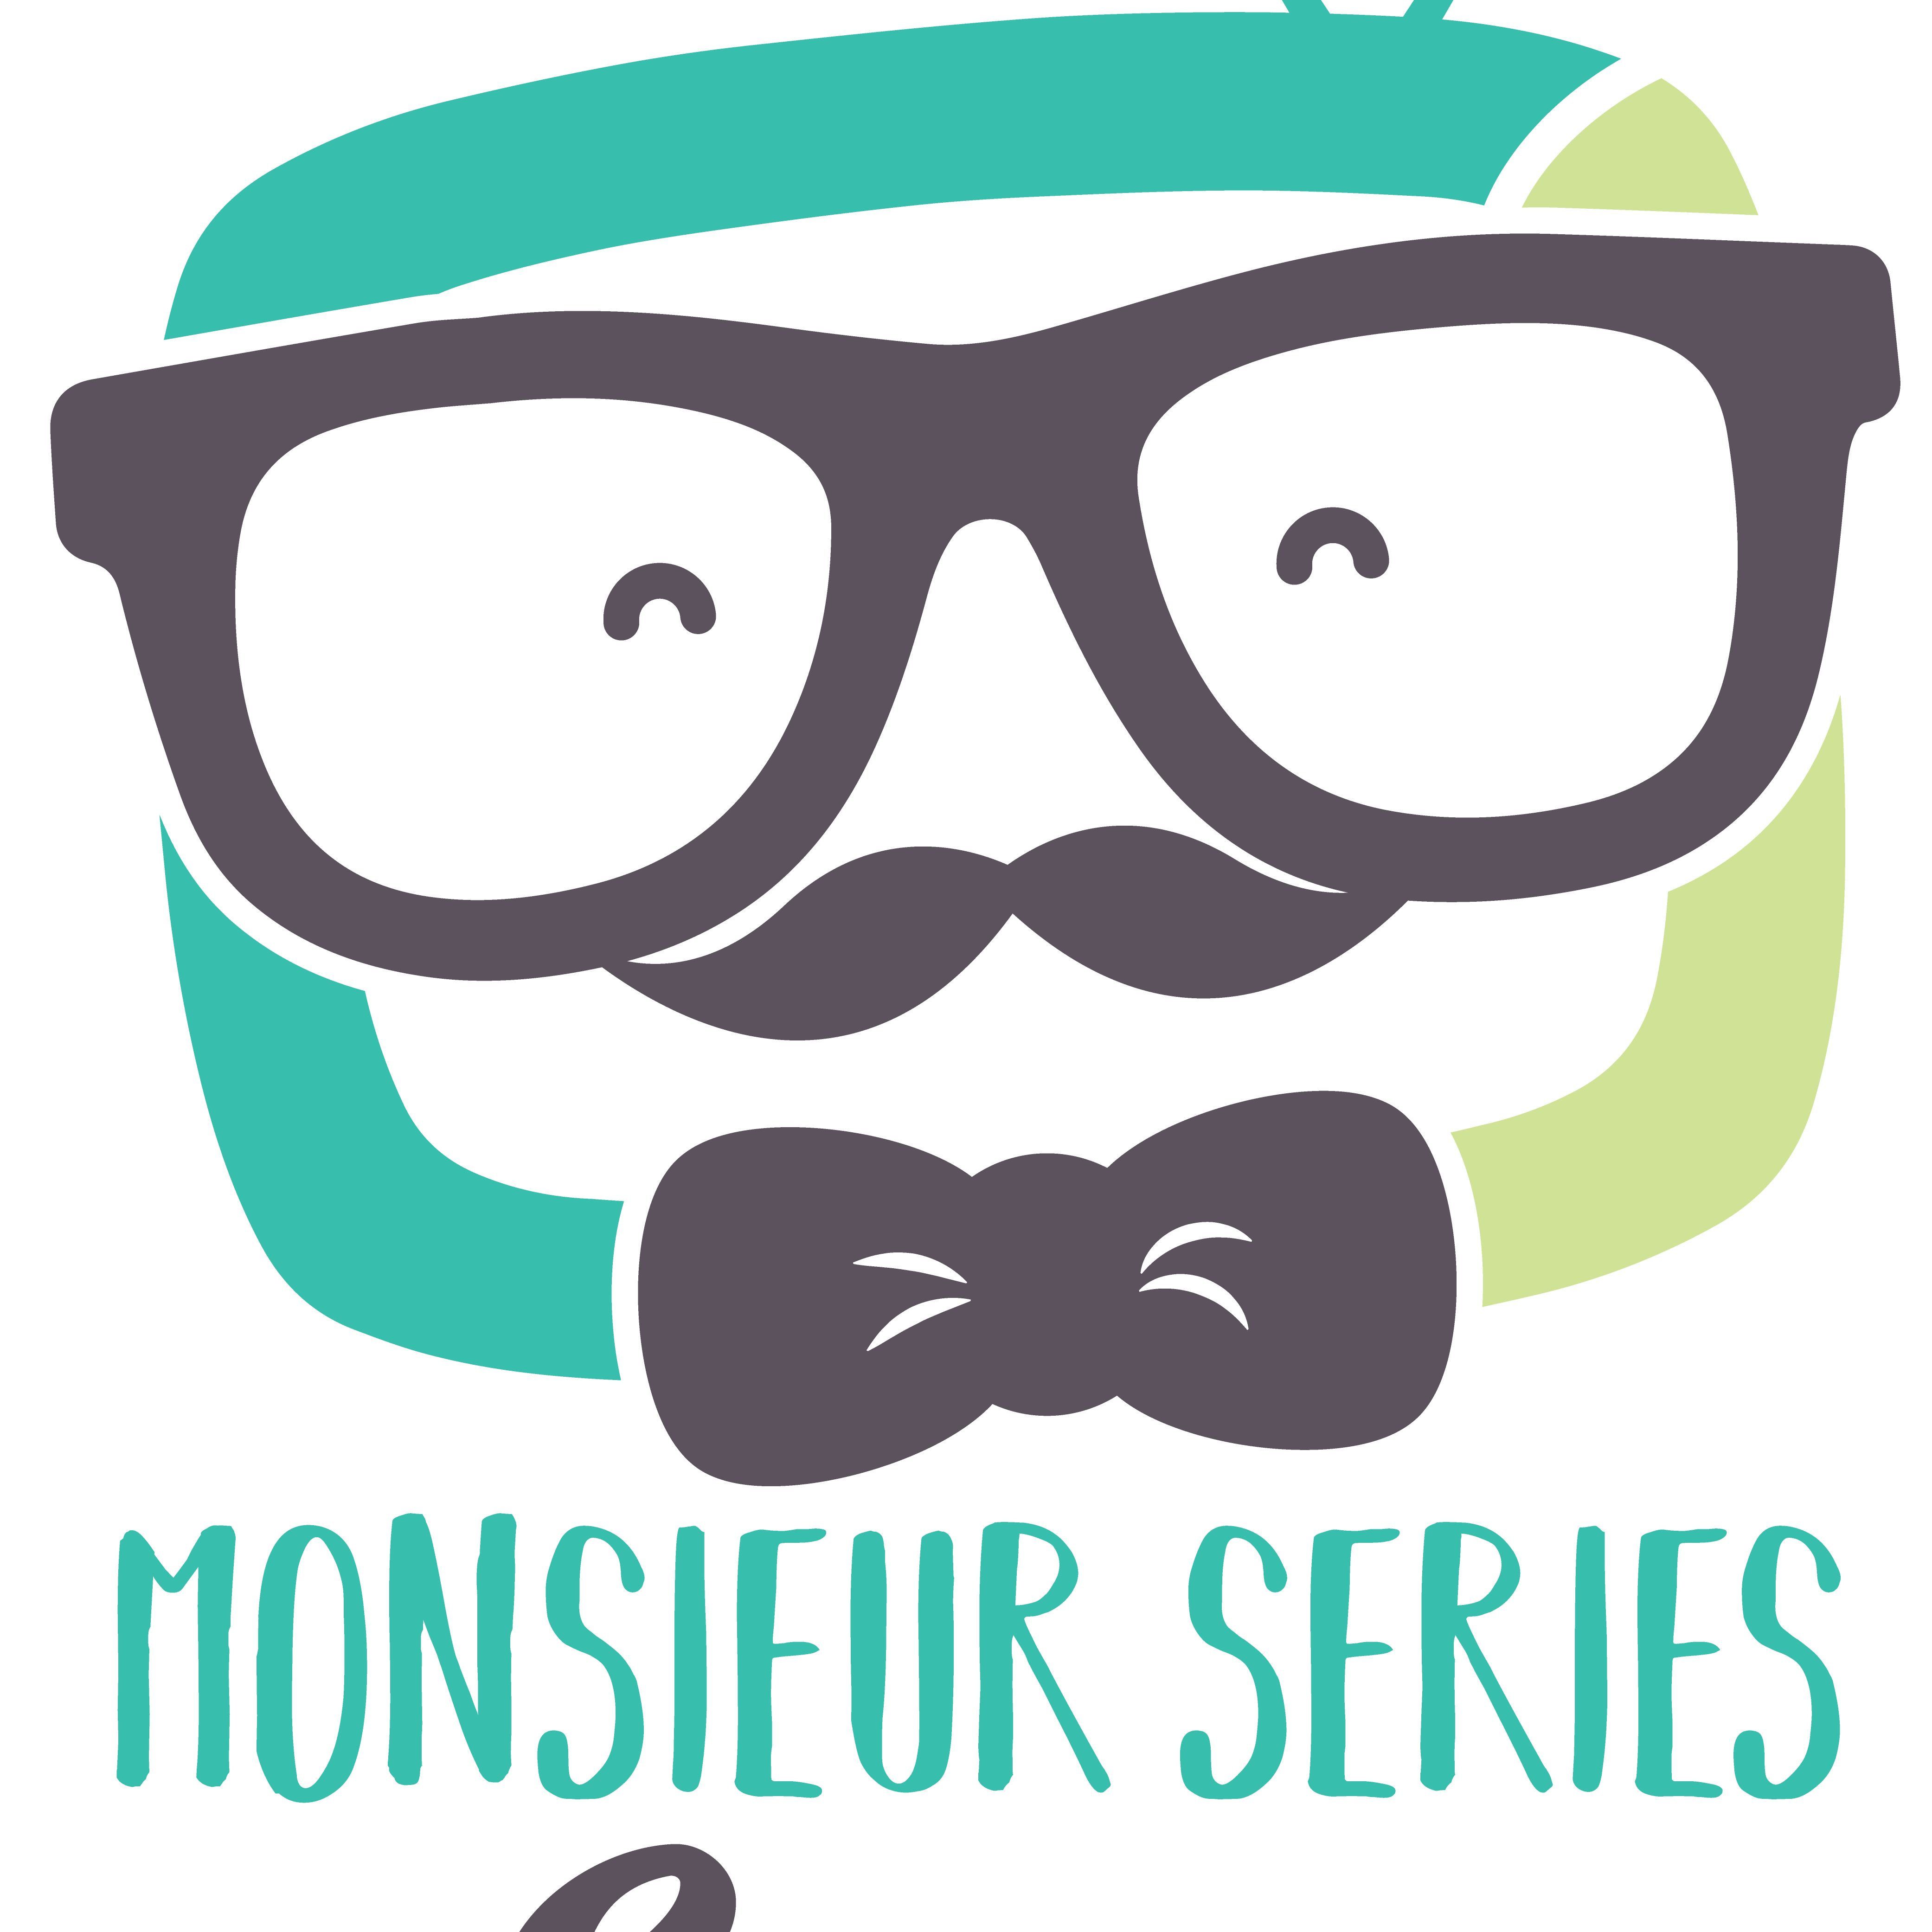 Monsieur Series and friends